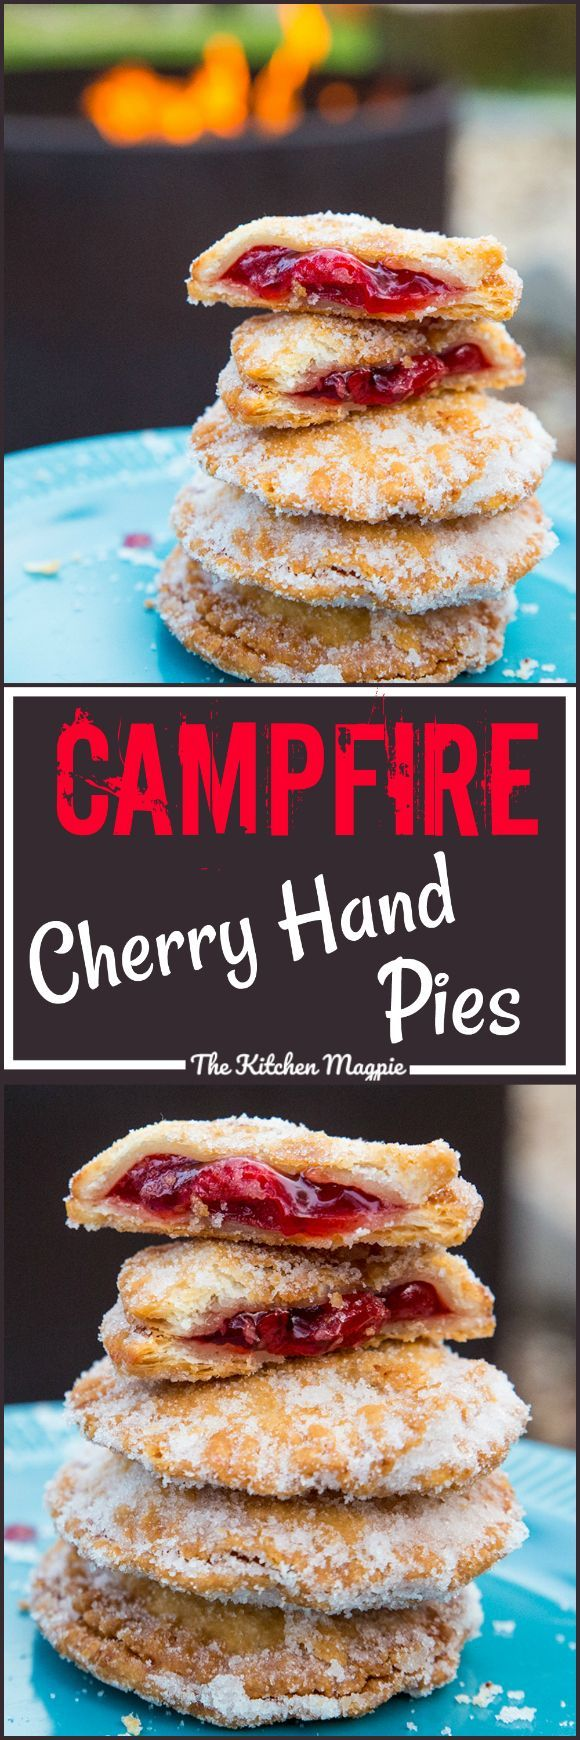 Campfire Cherry Hand Pies....do I have you intrigued? These little delights were made while camping, they are THAT easy! #camping #campfire #recipes #cherry #cherrypie #pie